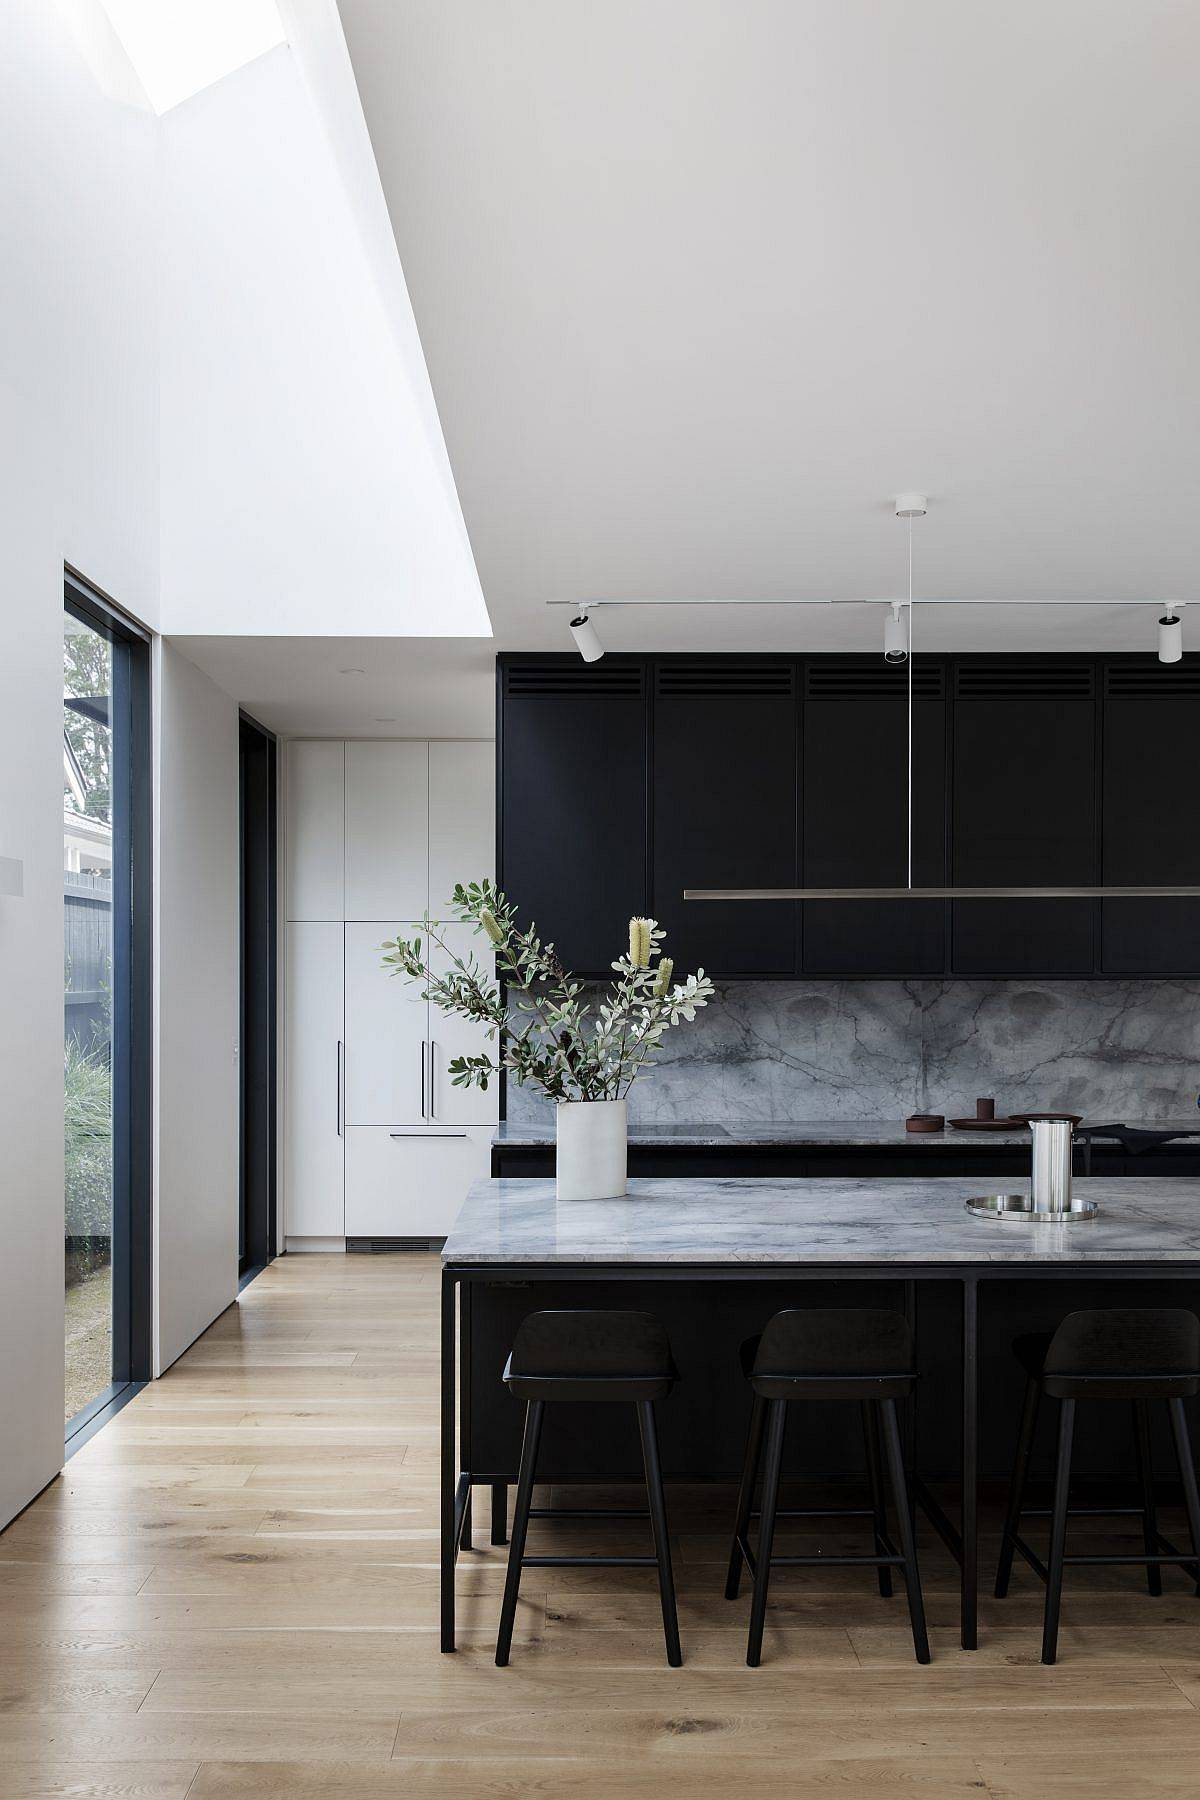 Skylight-brings-natural-light-into-the-modern-kitchen-of-the-Federation-era-home-98188